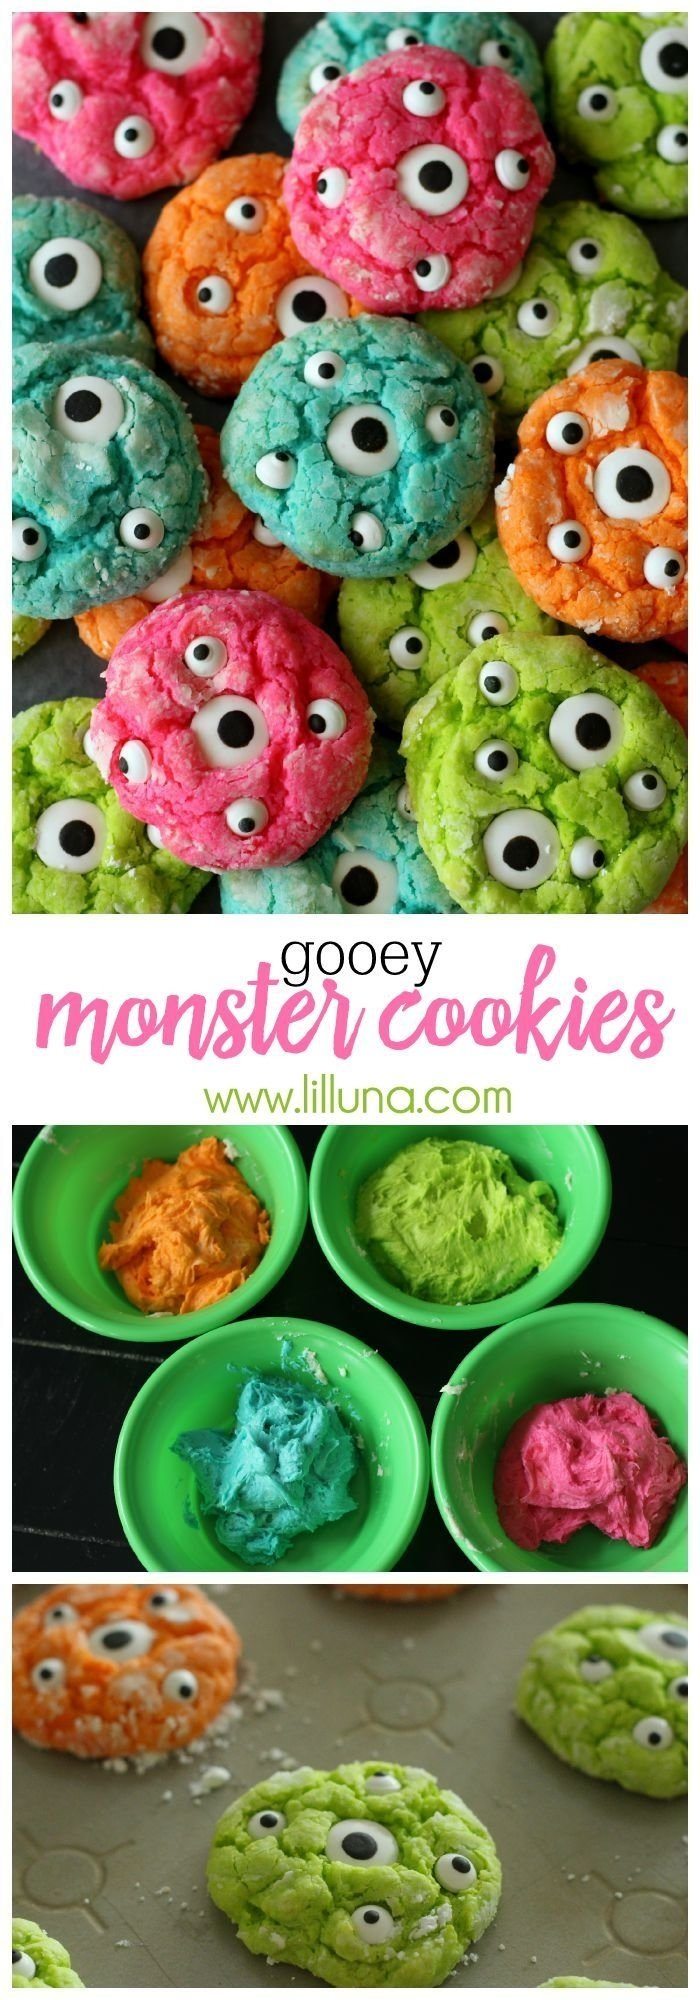 10 Awesome Halloween Baking Ideas For Kids 356 best spooky eats haunted treats images on pinterest halloween 2021